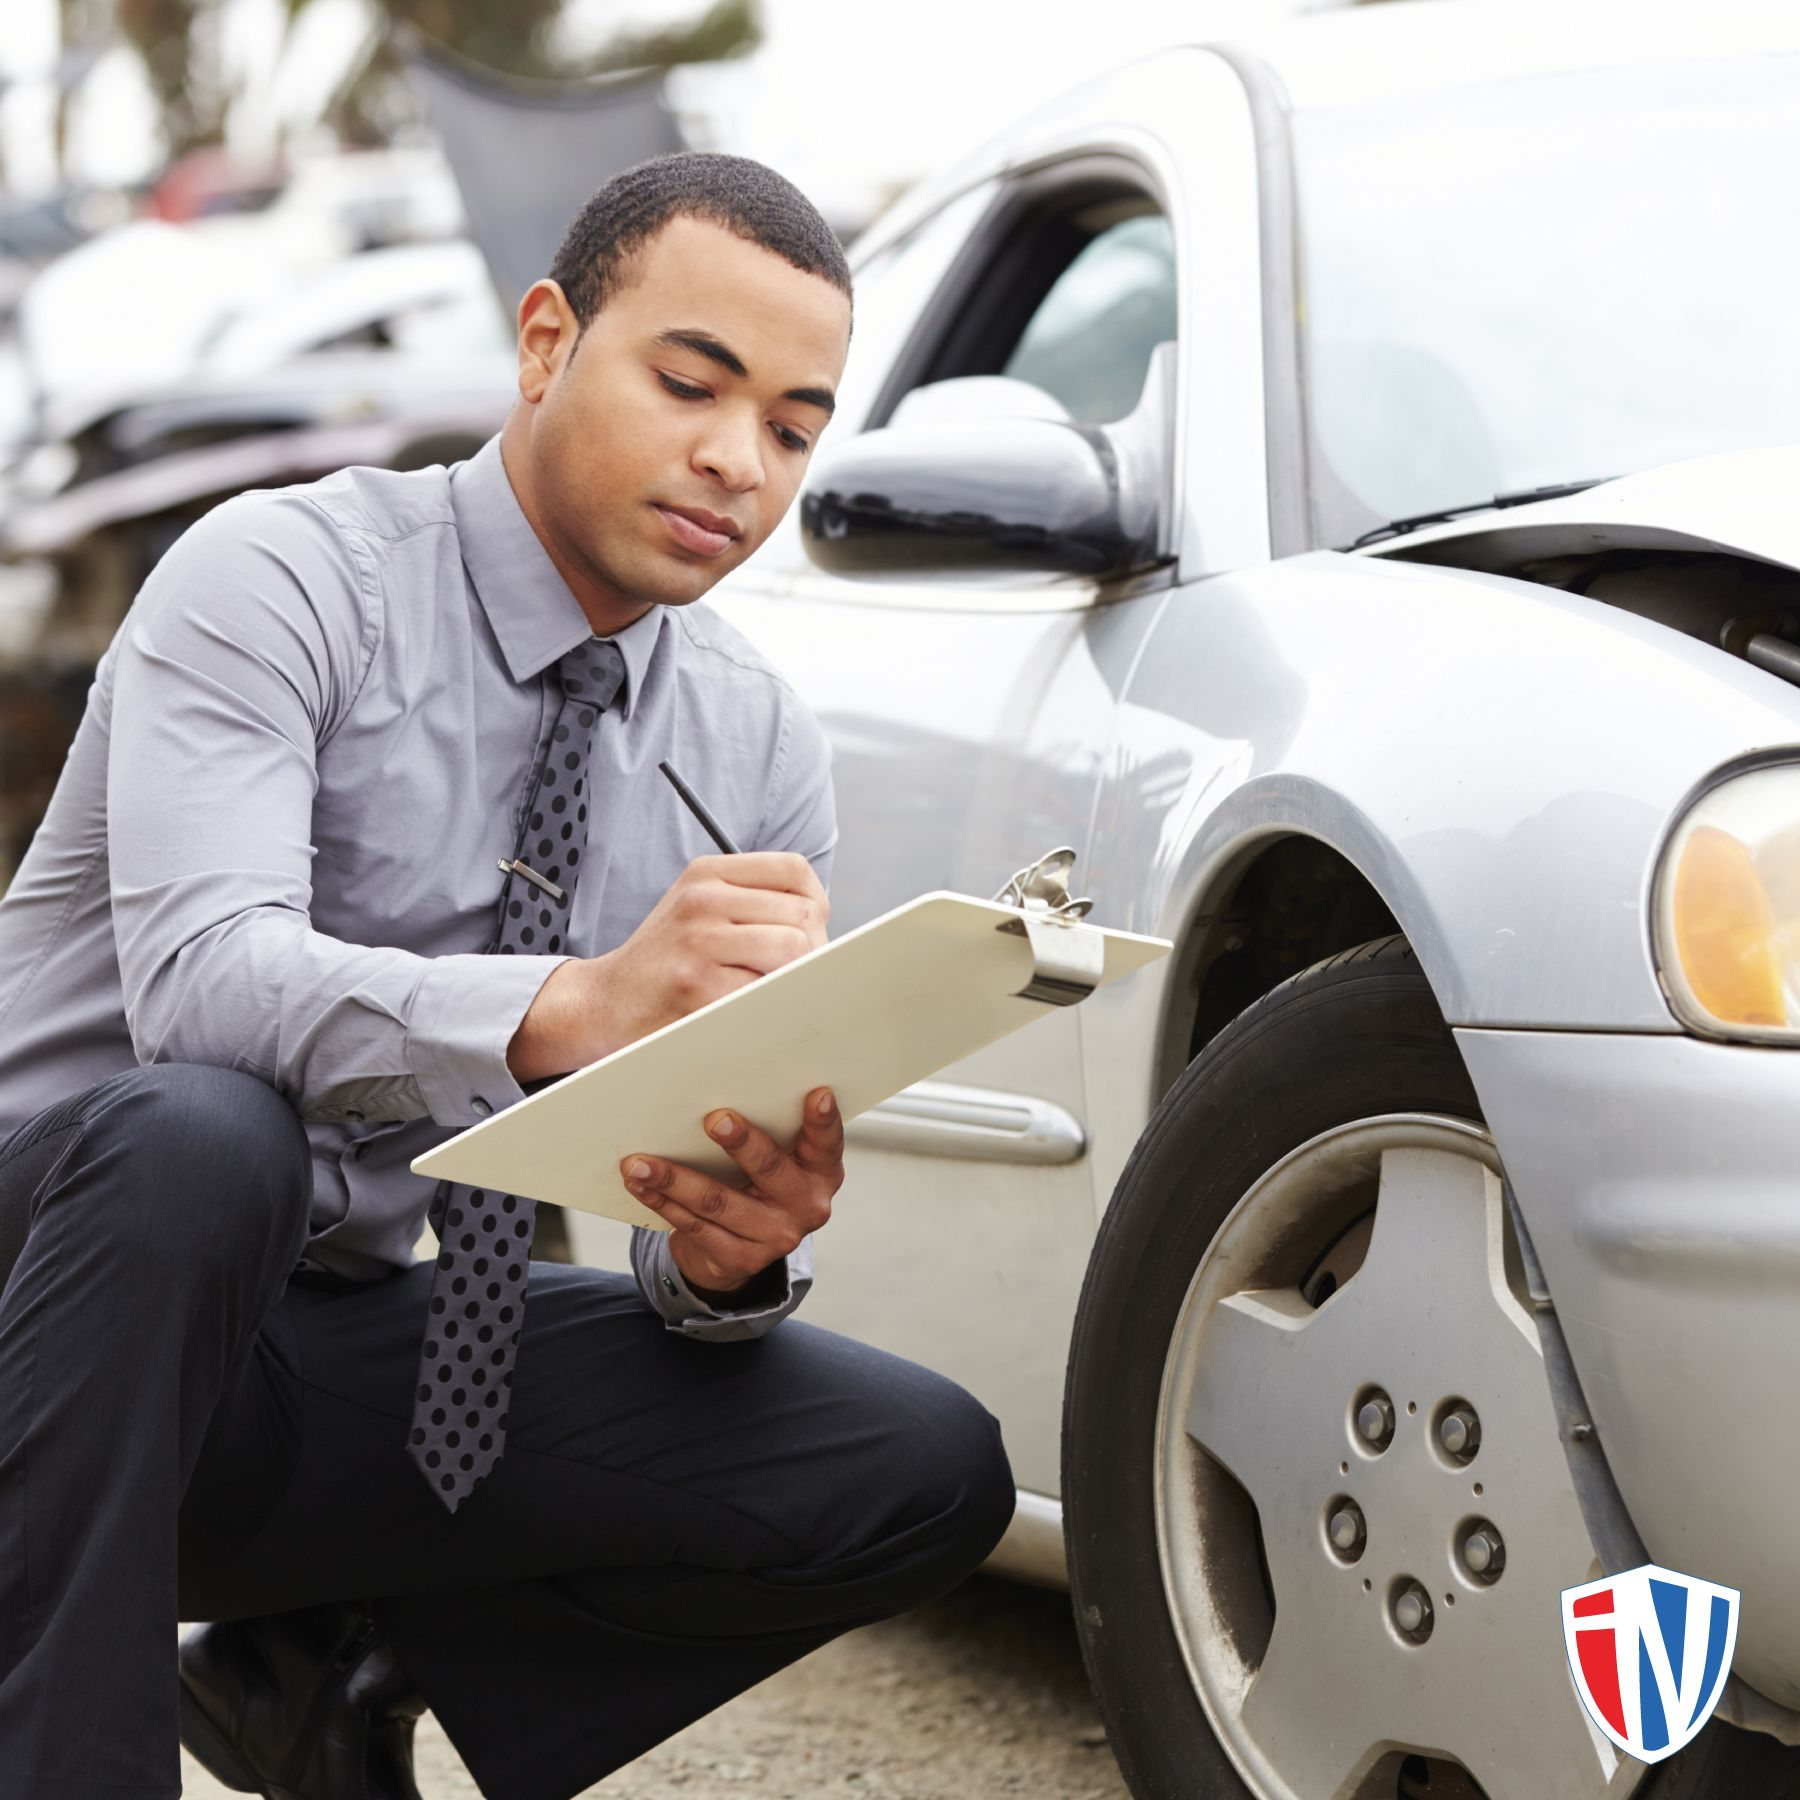 Did you know you can get car insurance discounts for